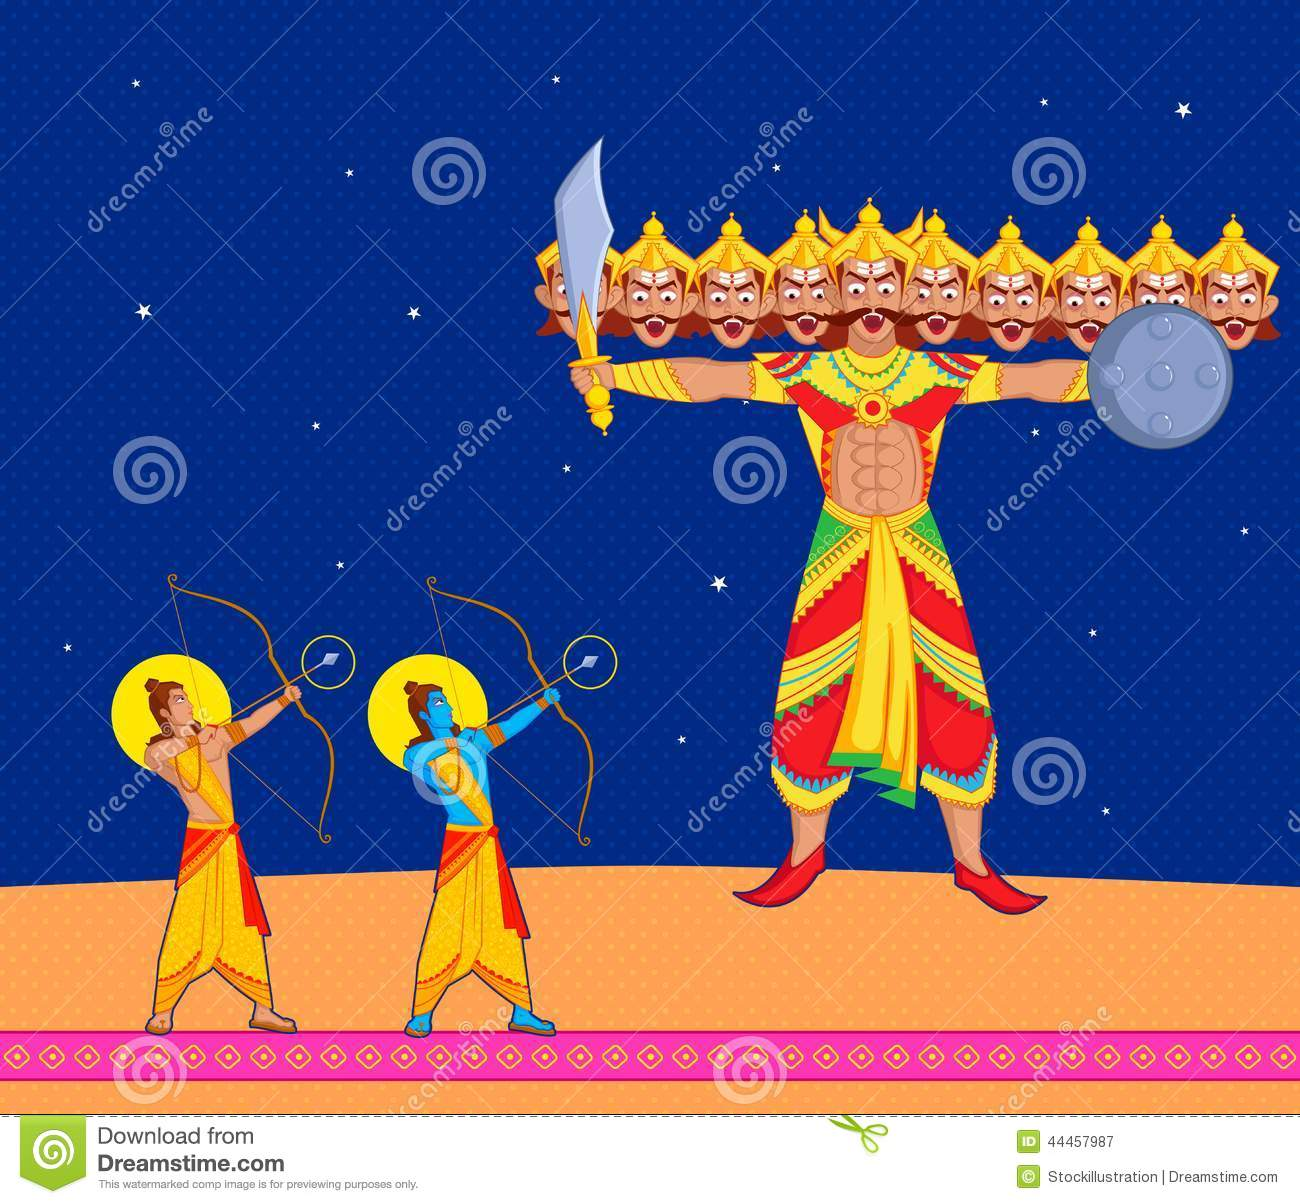 Happy Diwali Animated Wallpaper Rama Killing Ravana In Dussehra Cartoon Vector